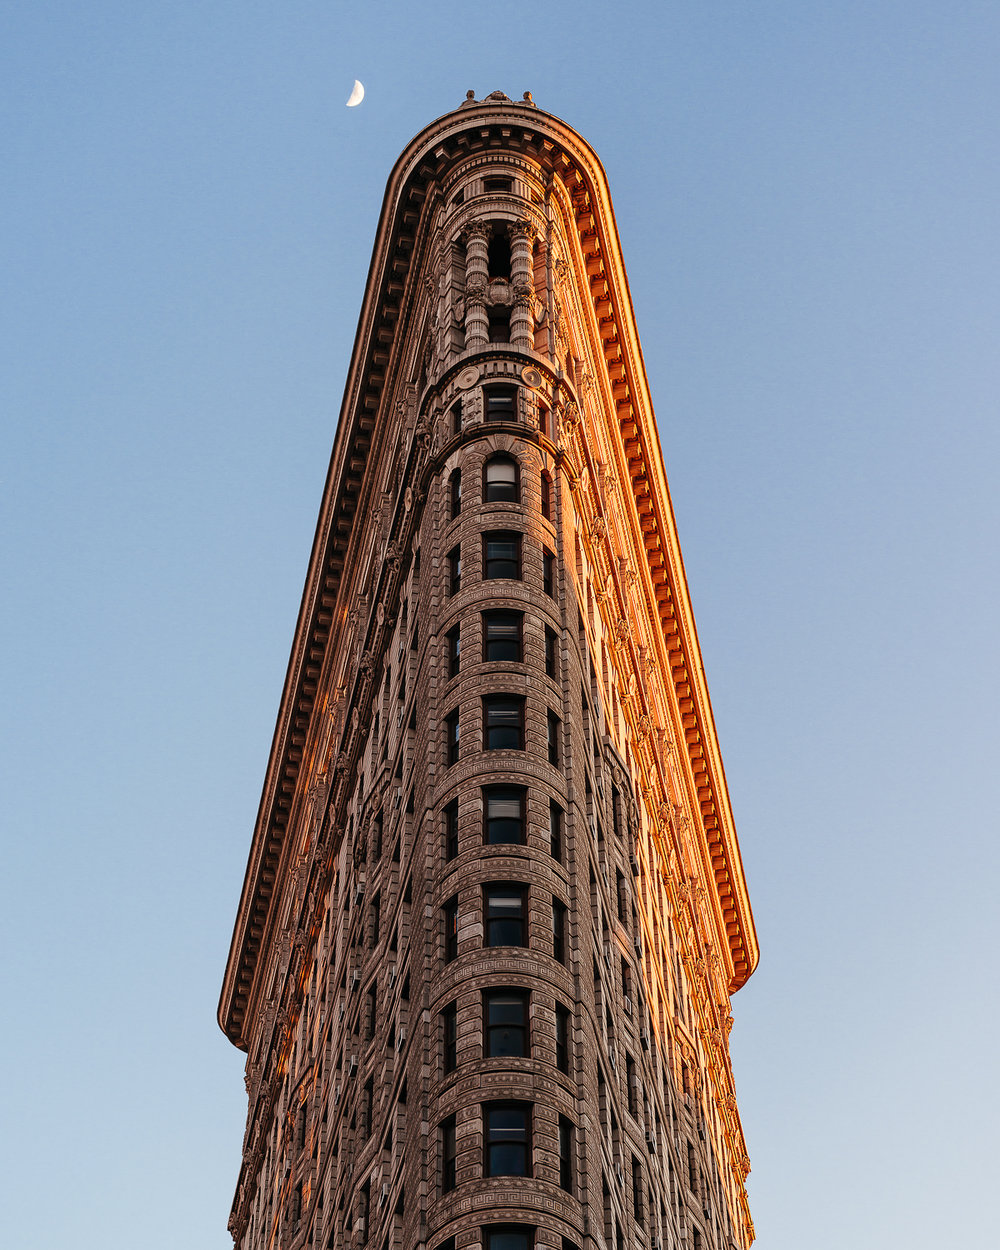 The Flatiron Building opened in 1902 as a groundbreaking skyscraper of its time. Its name derives from its likeness of a cast-iron clothes iron.